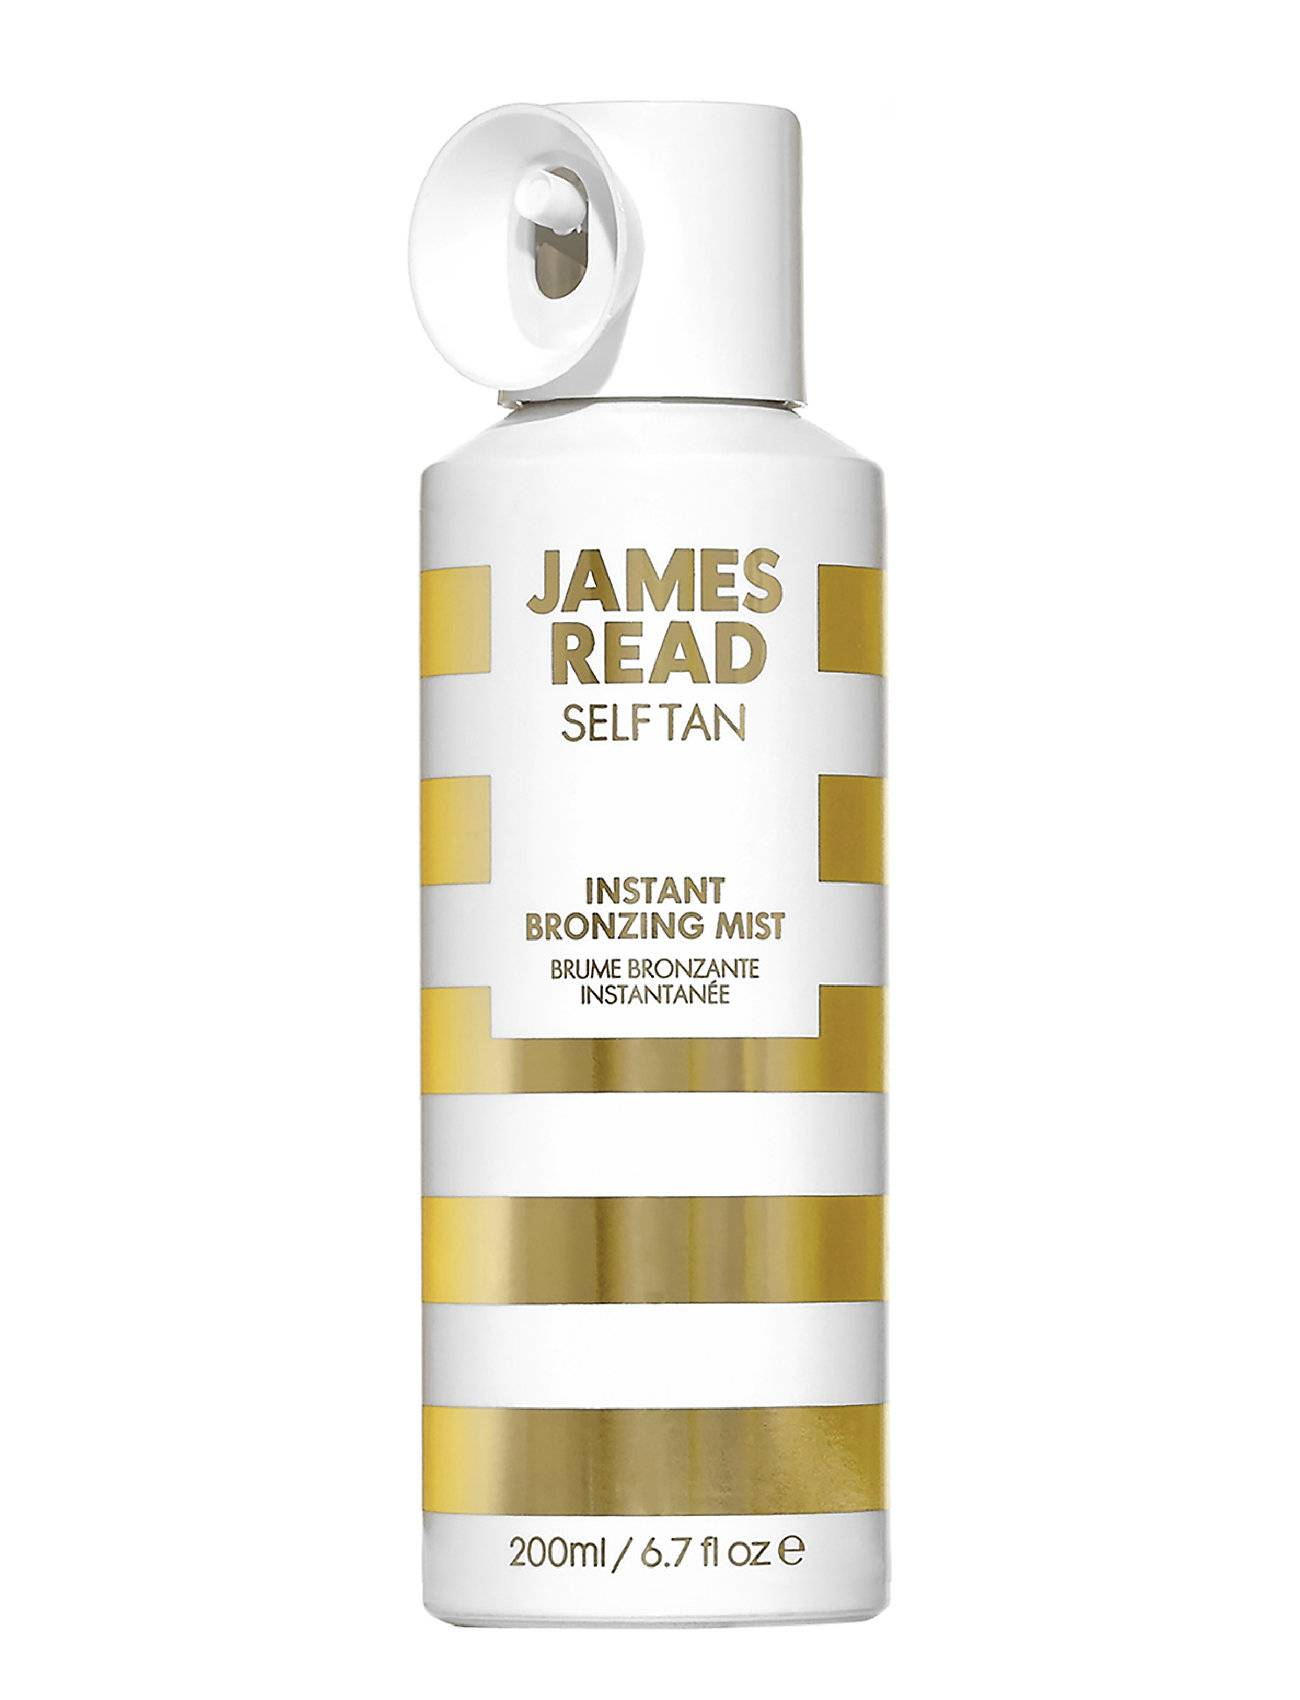 James Read Instant Bronzing Mist Face & Body